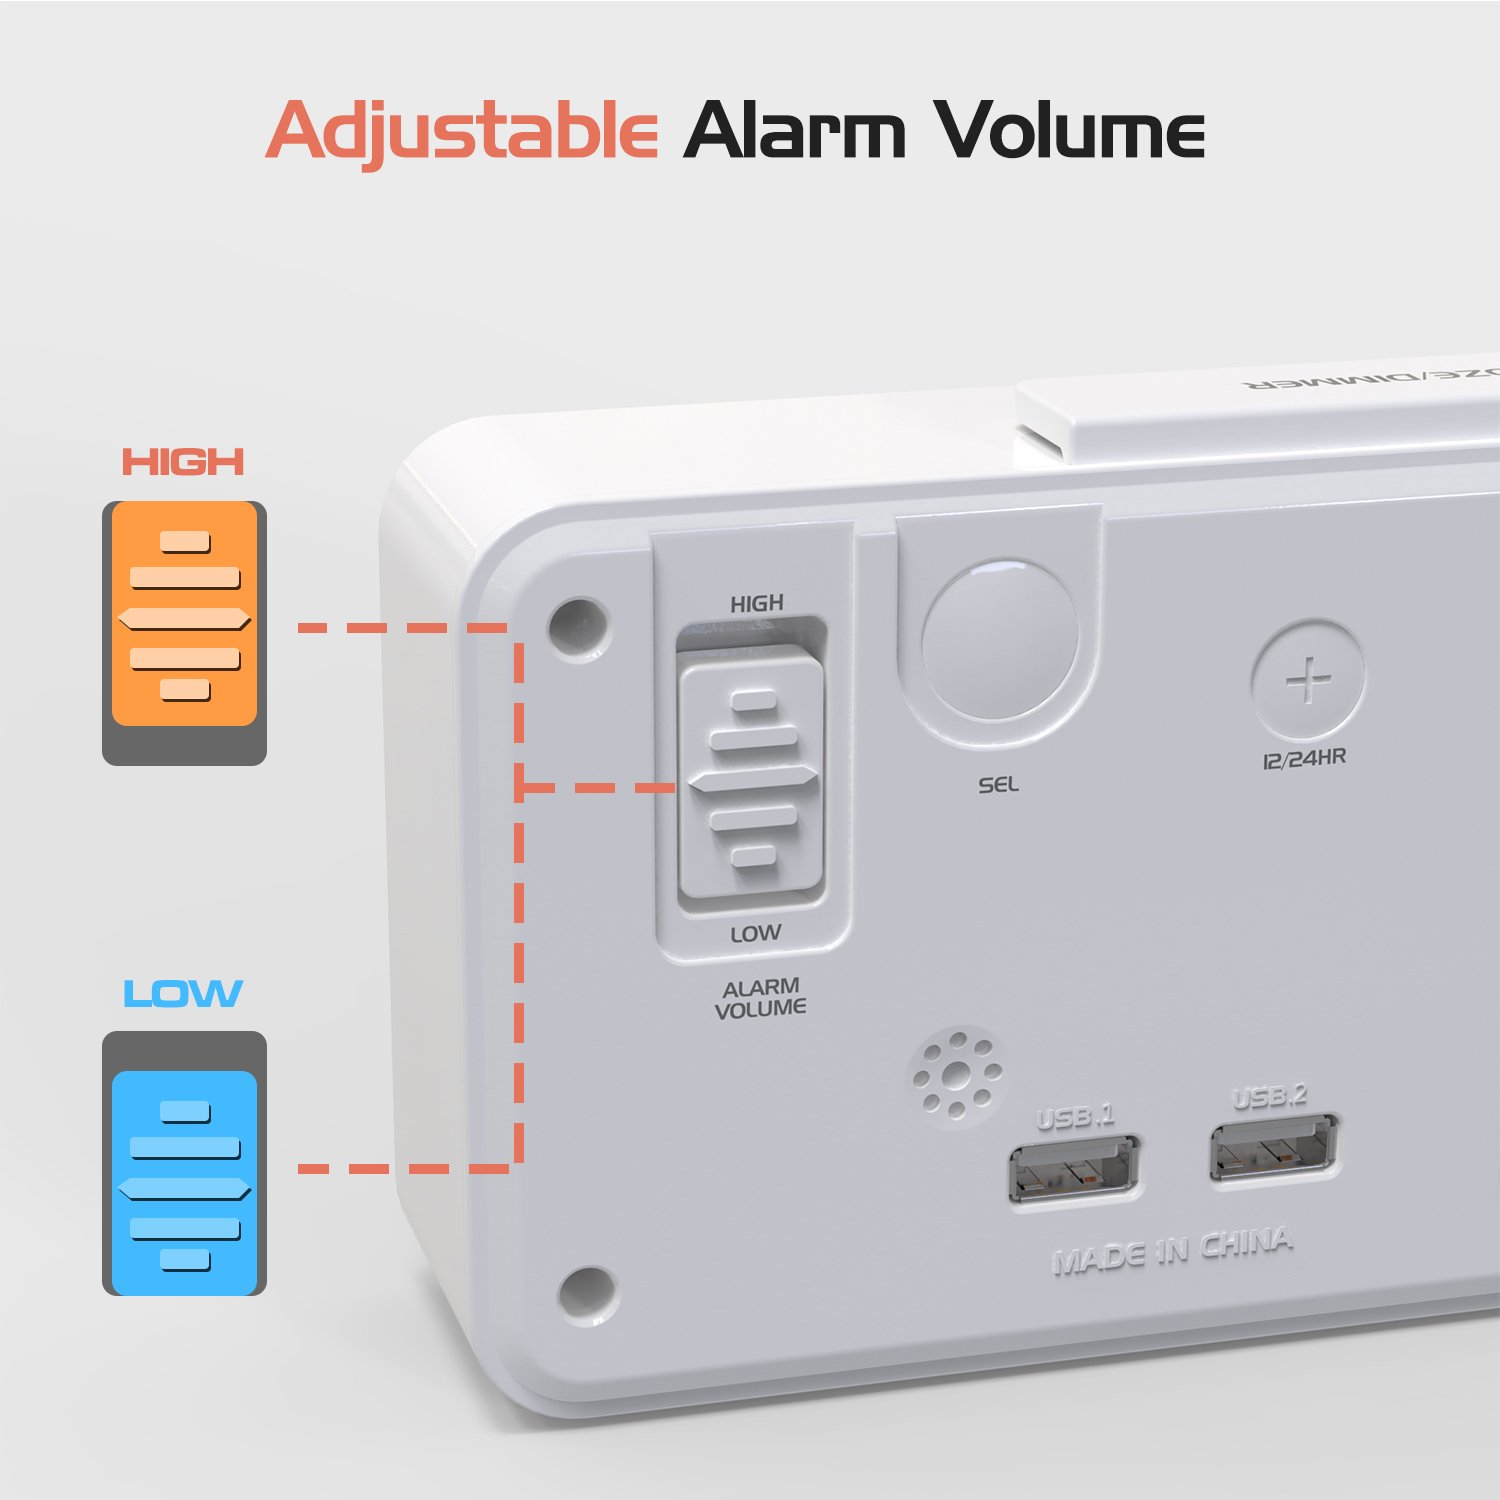 Moko Led Alarm Clock With 89 Large Display Usb Ports Snooze Jumbo Power Saver Circuit Diagram Electricity Saving Devices For Homes Dimmer And Voice Control Battery Backup 12 24 Hours